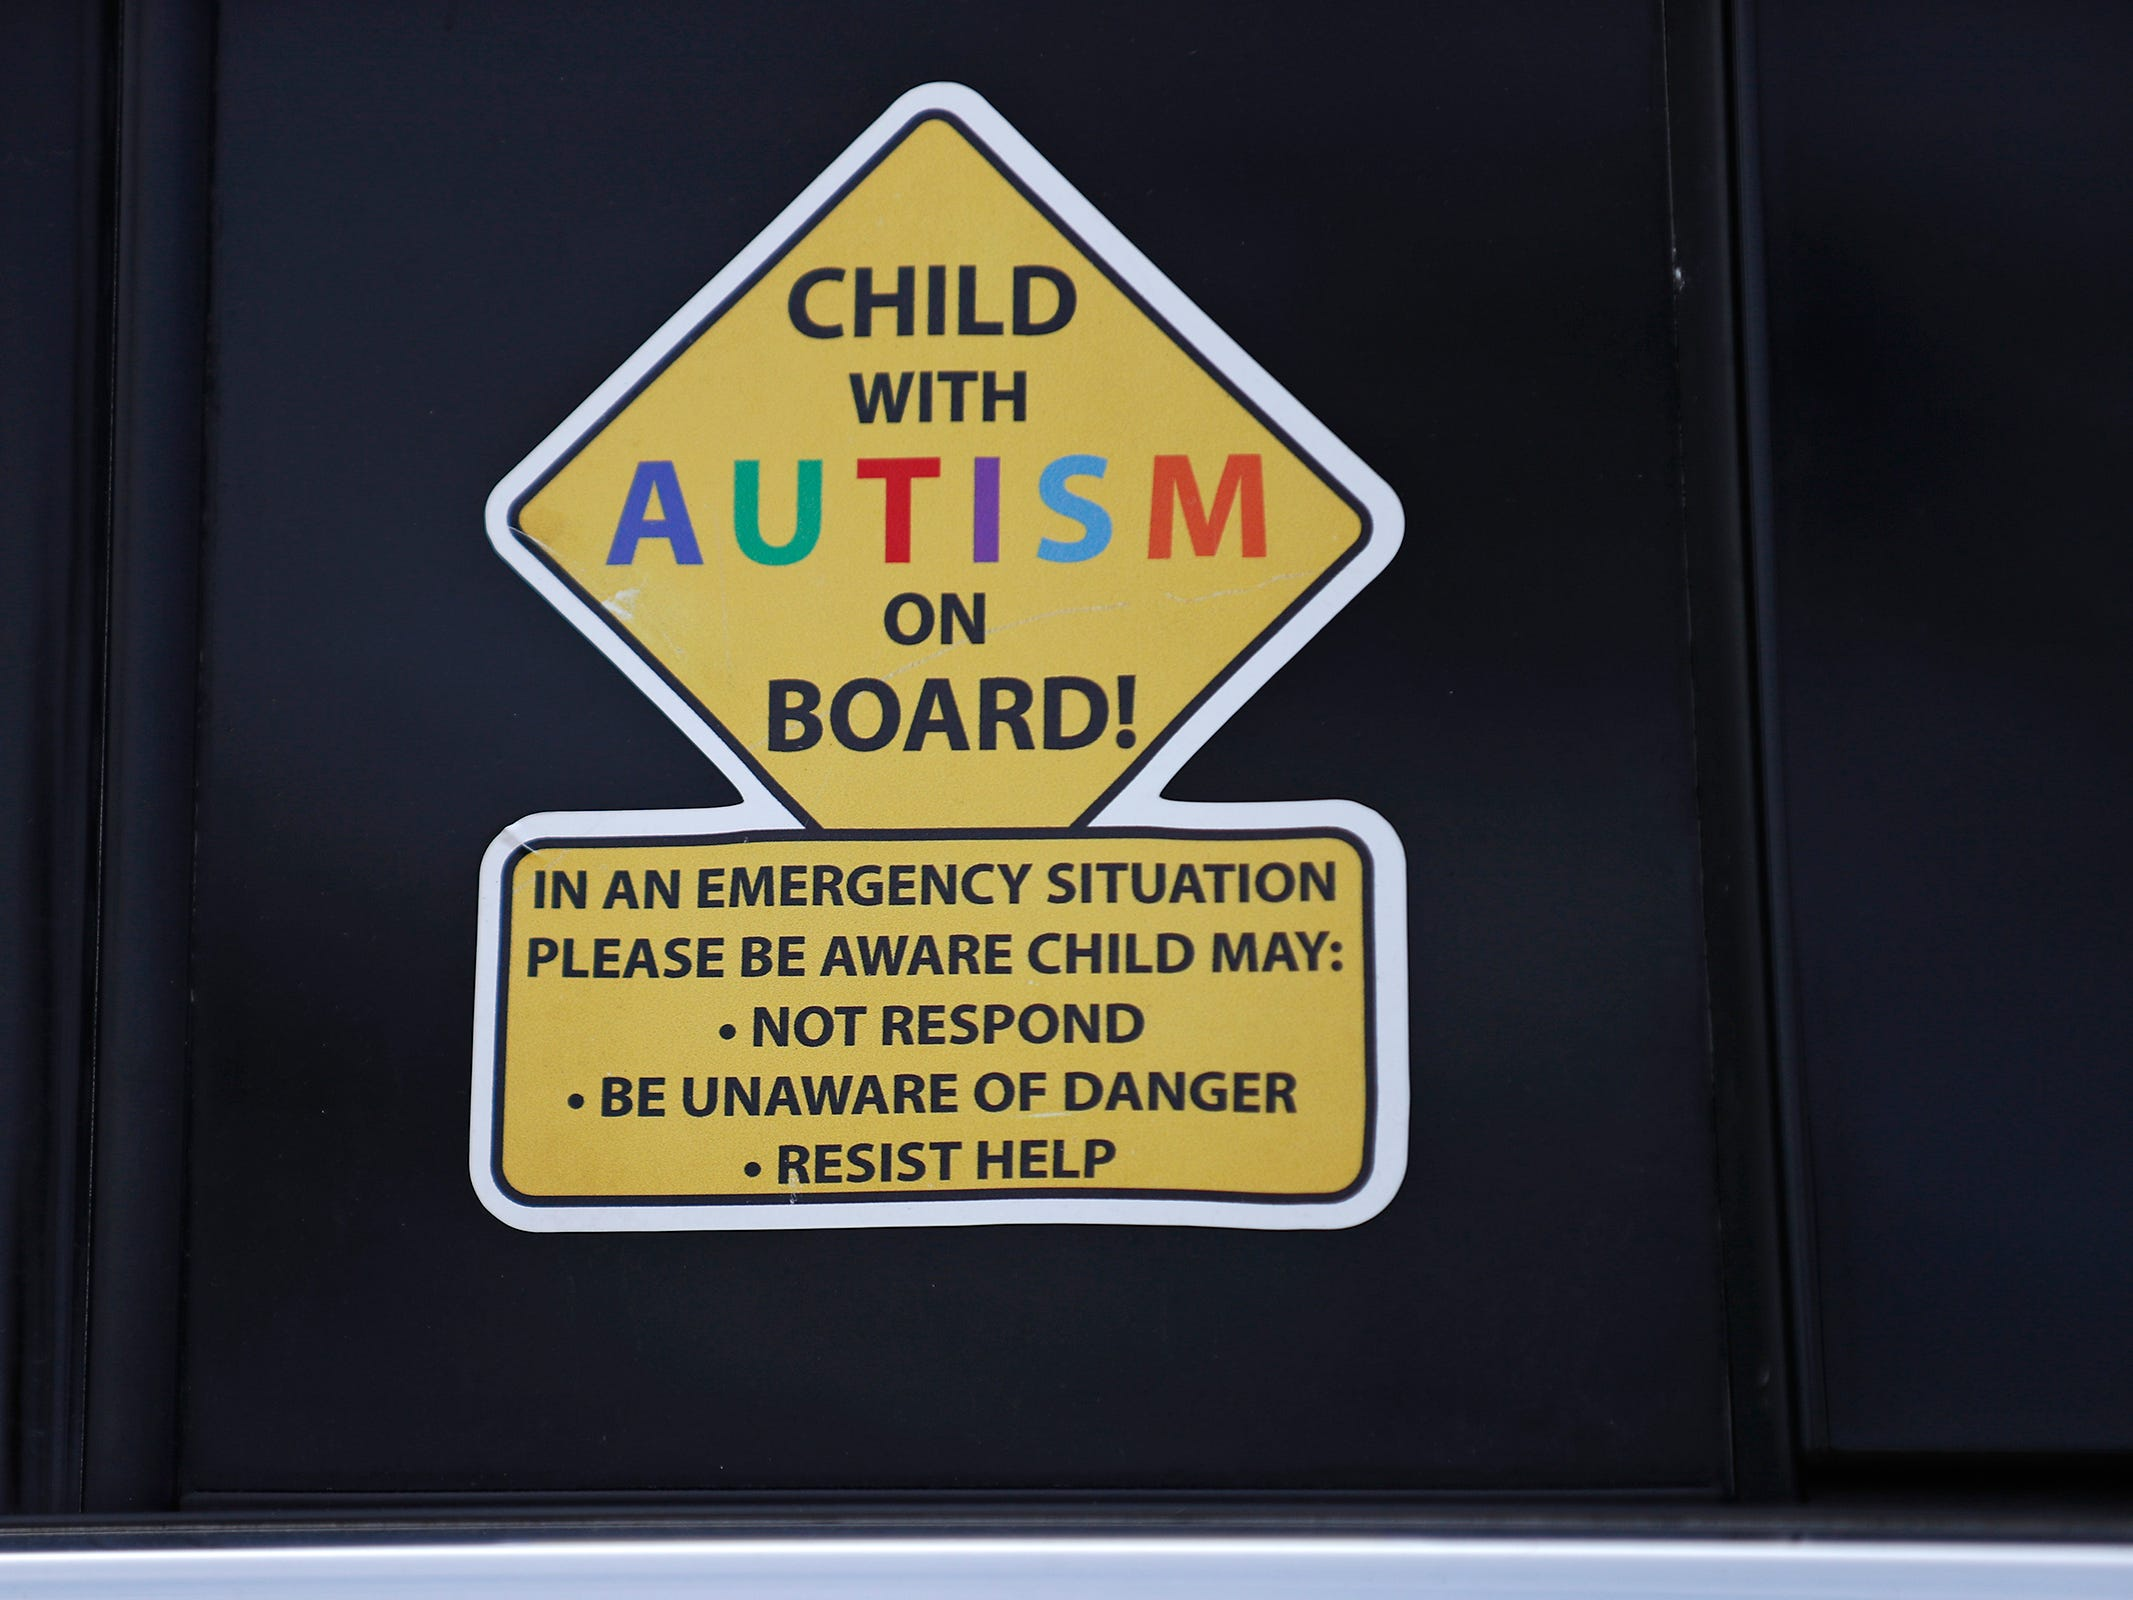 Dave and Heidi Curtis, Charly's parents, keep Autism alert stickers on their vehicles, seen here, Thursday, Feb. 21, 2019. Charly was born with a genetic condition that eventually led her to develop grand mal seizures. After trying many medications that would work at first then become ineffective, they eventually tried treating her with THC, which has been known to help children with seizures.  But in Indiana, that meant going through a lot of bureaucratic red tape.  When their THC was about to run out, Charly's father drove to Colorado to replenish their supply.  In his absence, Charly had a seizure and died.  The New Castle family wants to share their story to promote the legalization of medical marijuana.